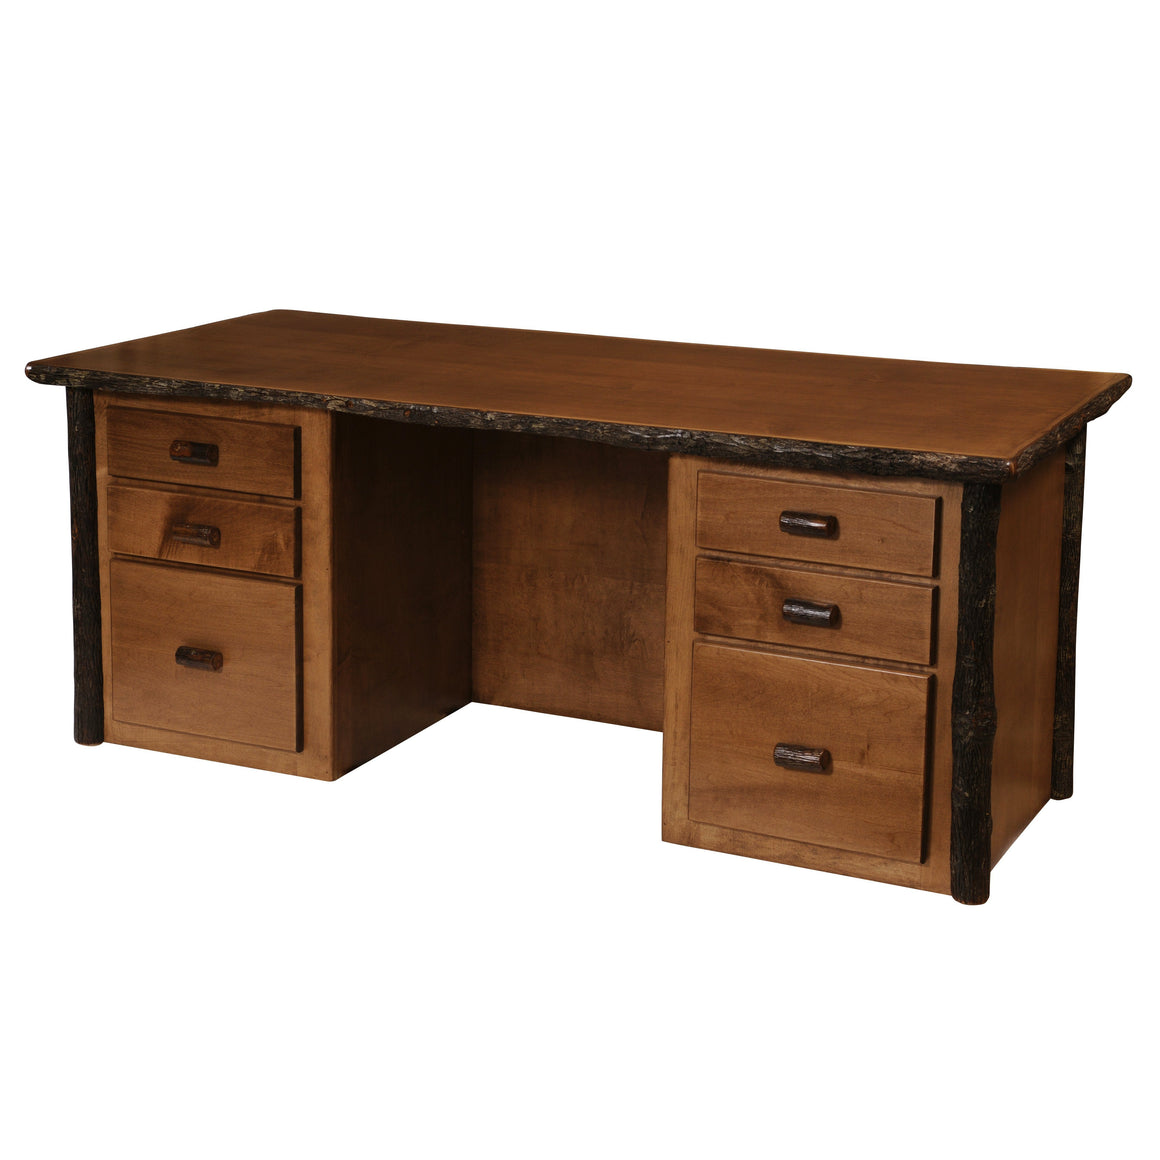 Natural Hickory Log Executive Desk - Custom Handmade USA - Armor Finish - Rustic Deco Incorporated